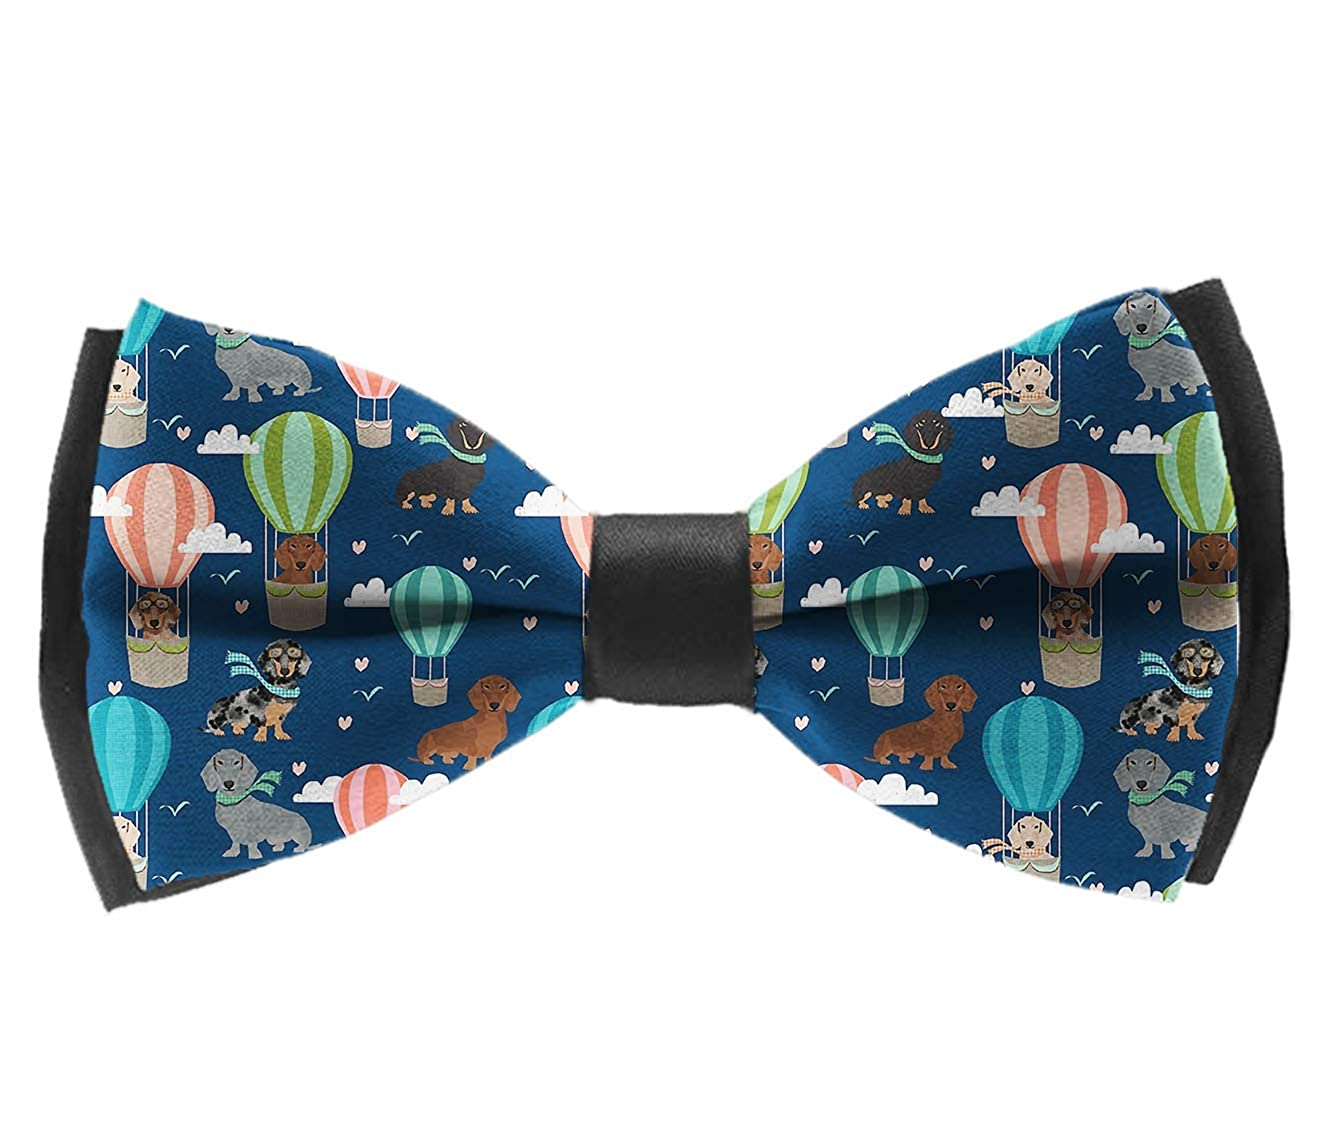 Creative Bow Tie Gift Casual And Formal Bow Tie for Business Wedding Party